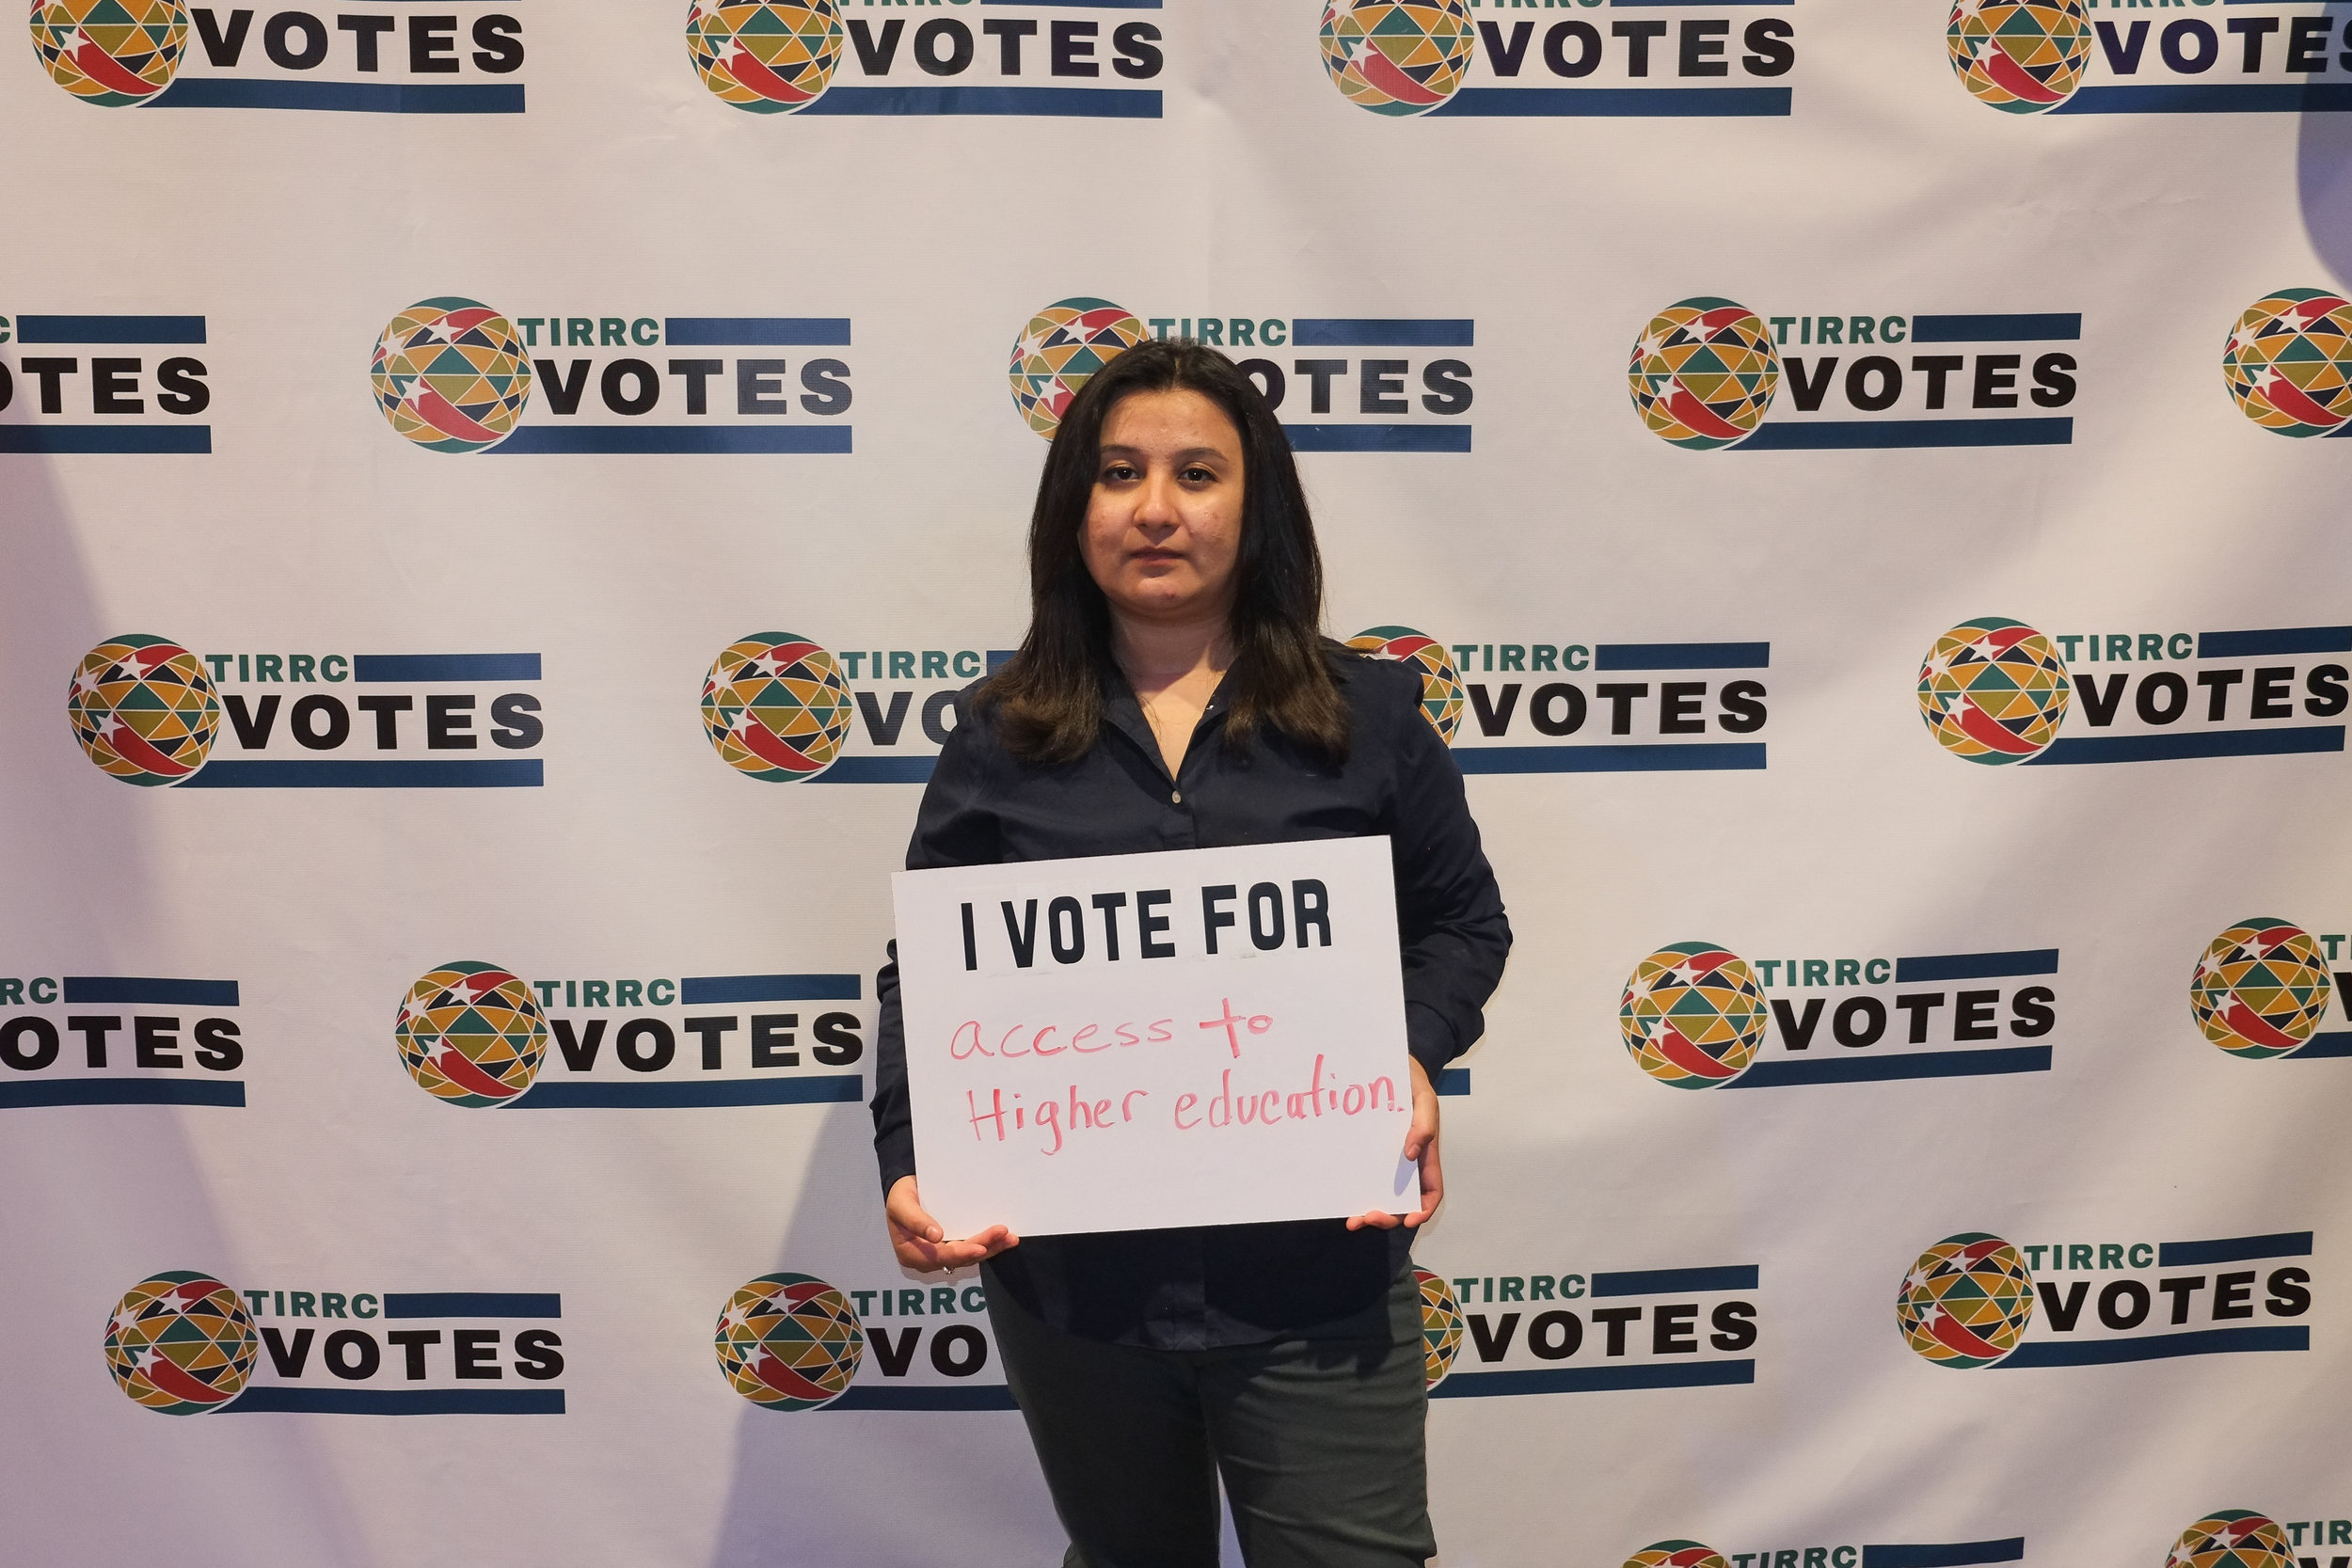 TIRRCVotes-PhotoBooth-71.jpg